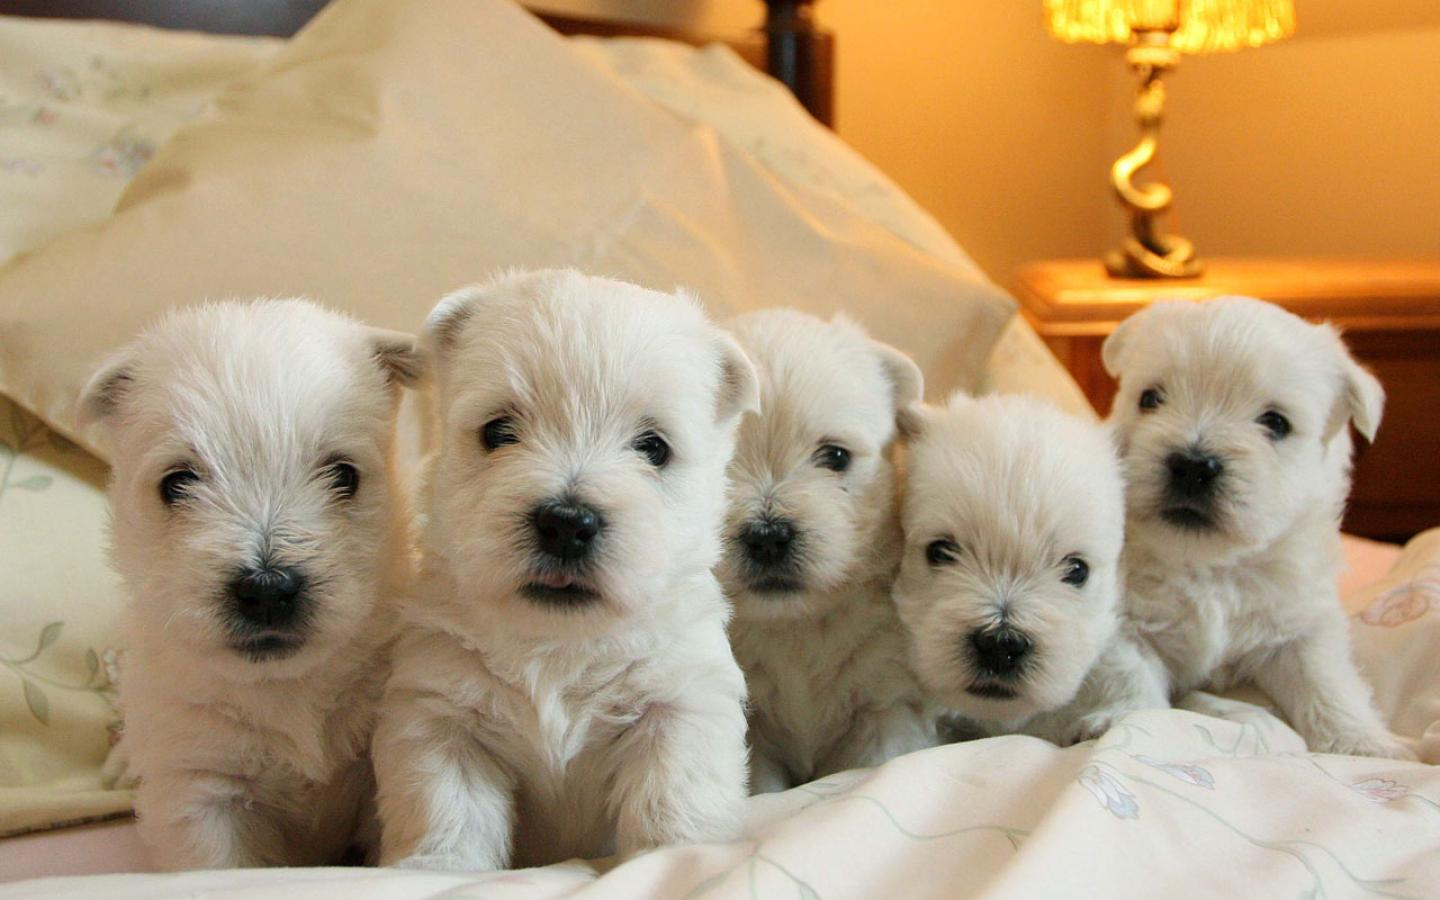 West Highland White Terrier - A Family Group of Westie Pups Wallpaper #2 1440 x 900